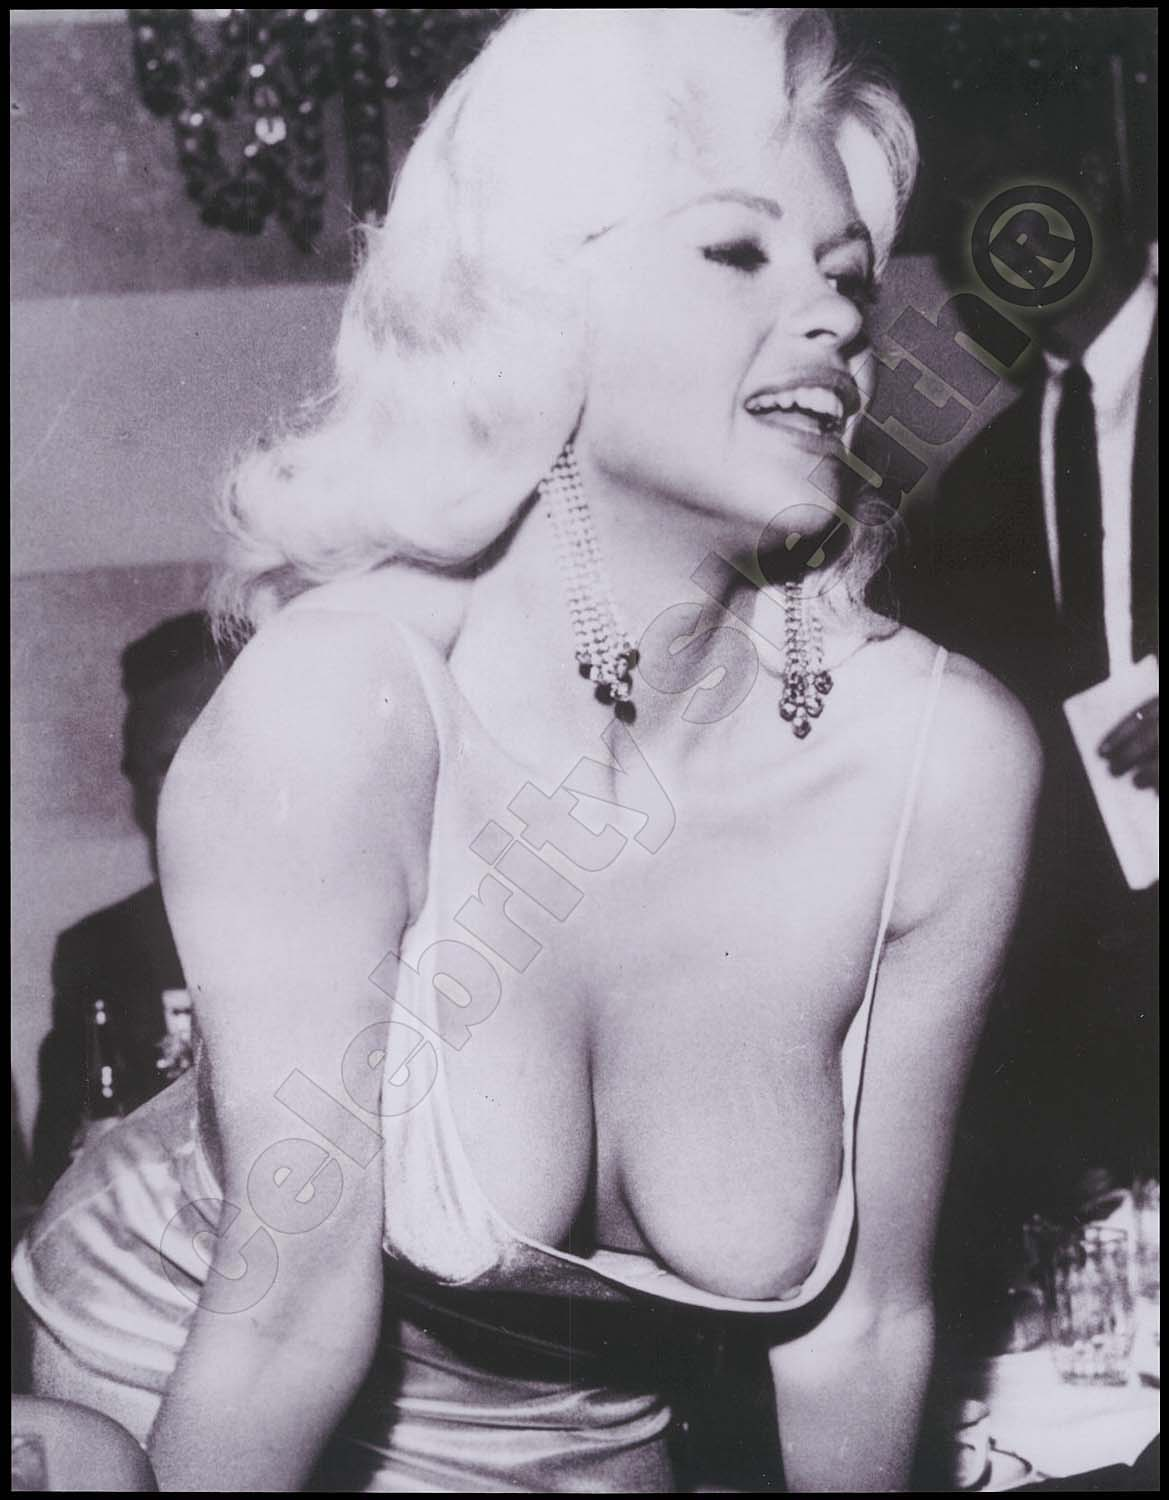 Porn jayne mansfield are not